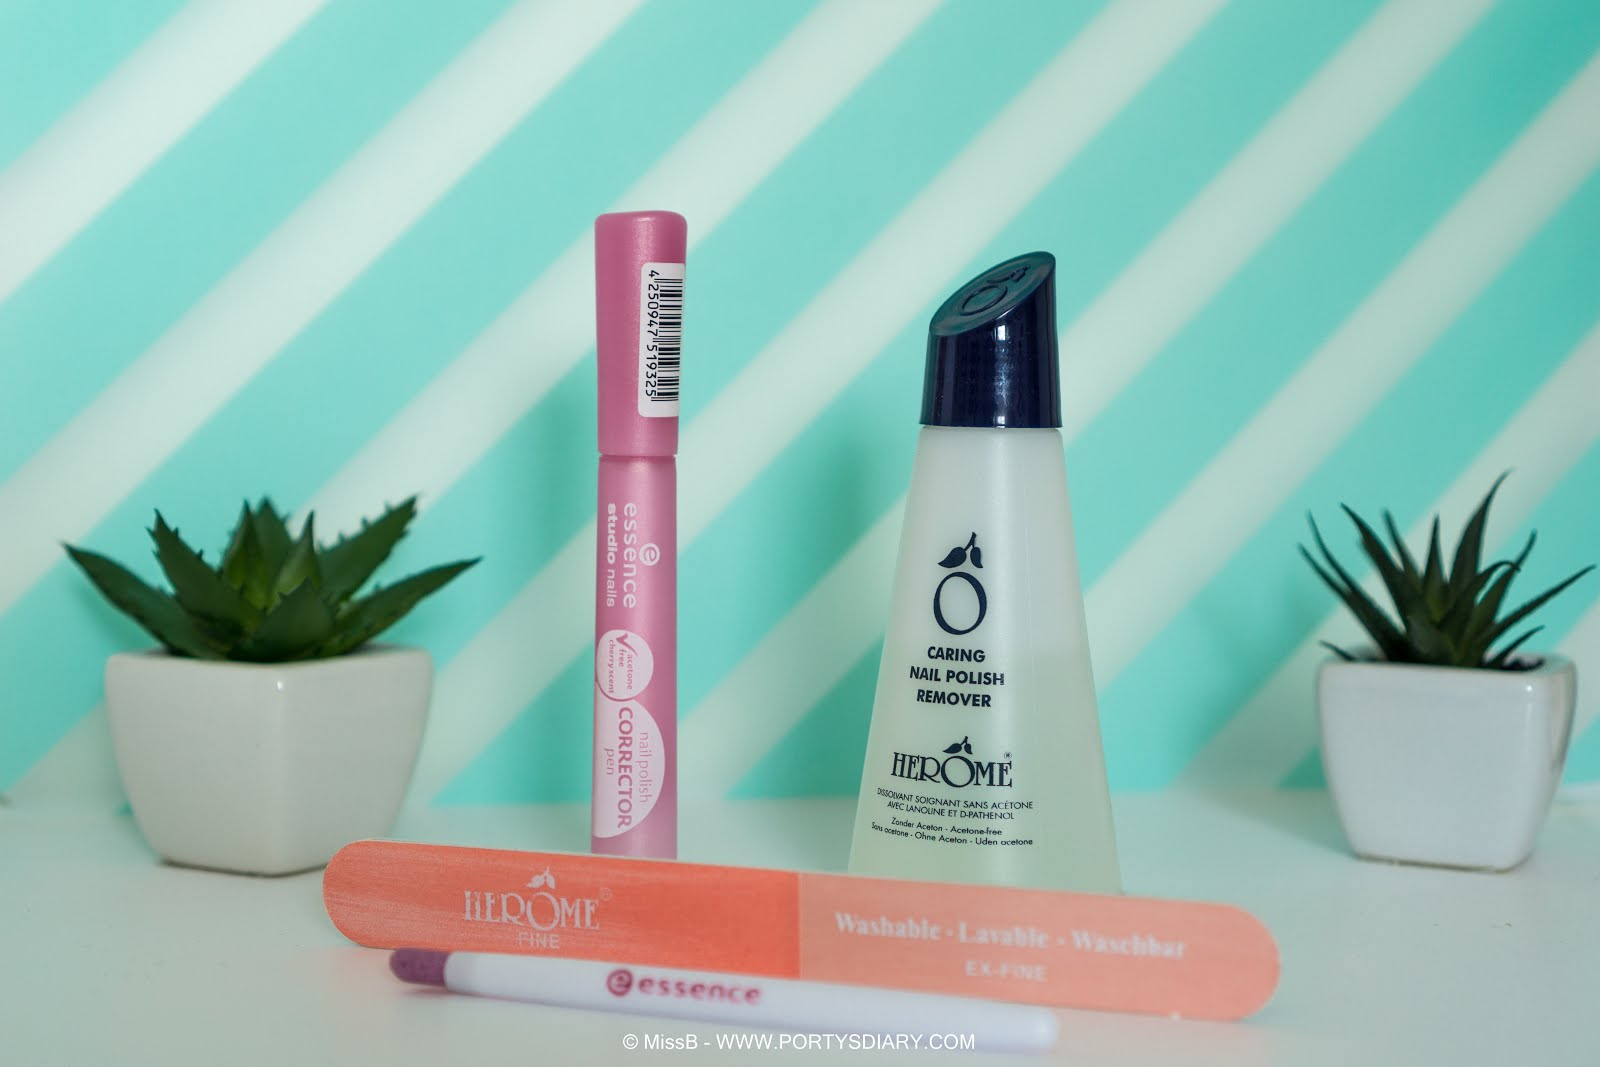 Current nail care routine favorites. Herôme 4-way perfect nail file and Caring nail polish remover. Essence Cuticle pusher and nail polish corrector pen.